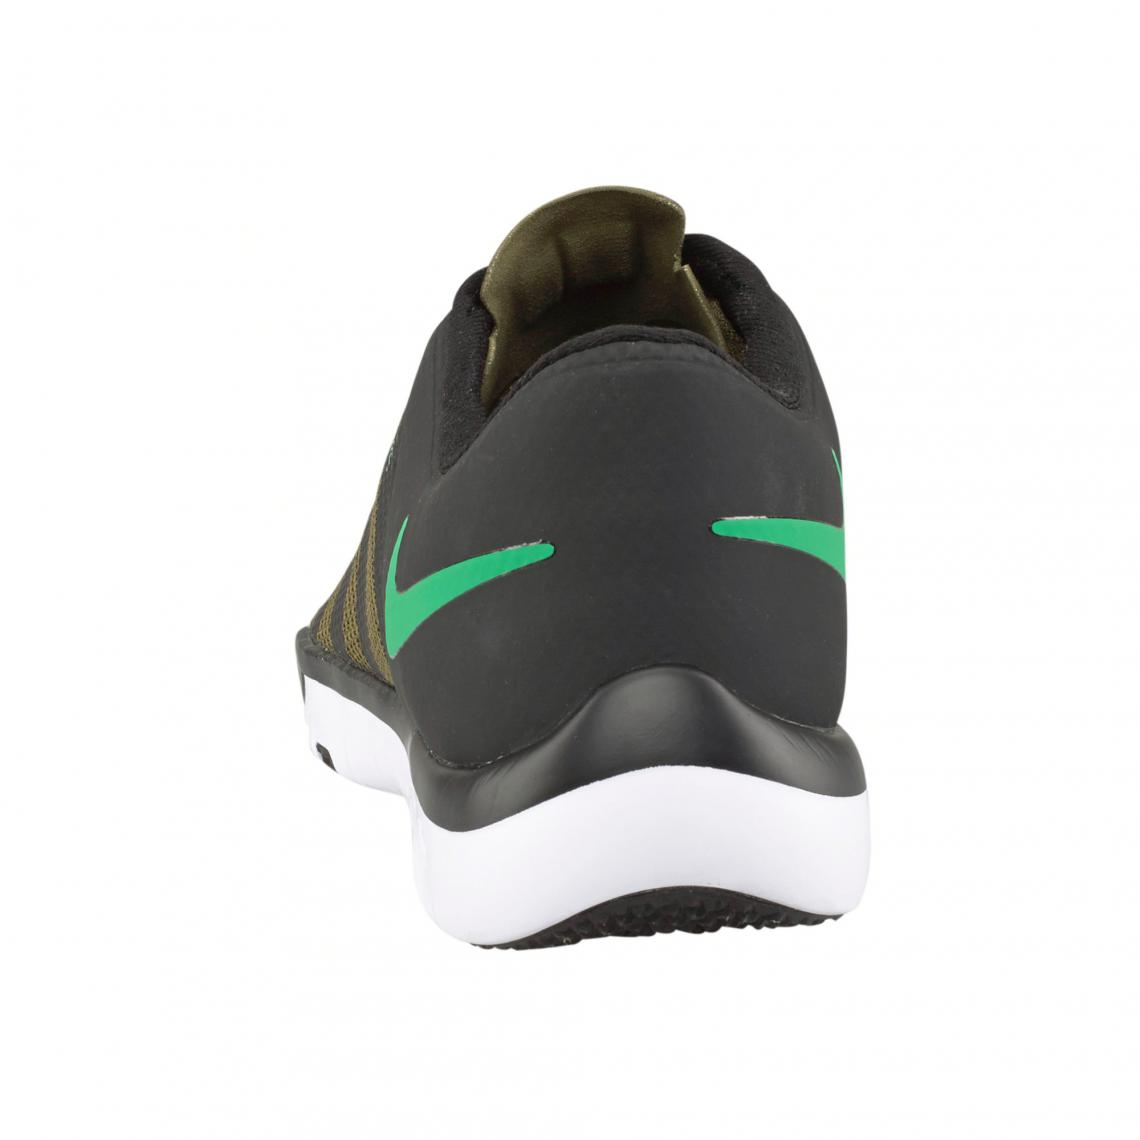 Basses Chaussures Training Homme 5 Free De Trainer 0 Nike Noir3 n0mN8vw